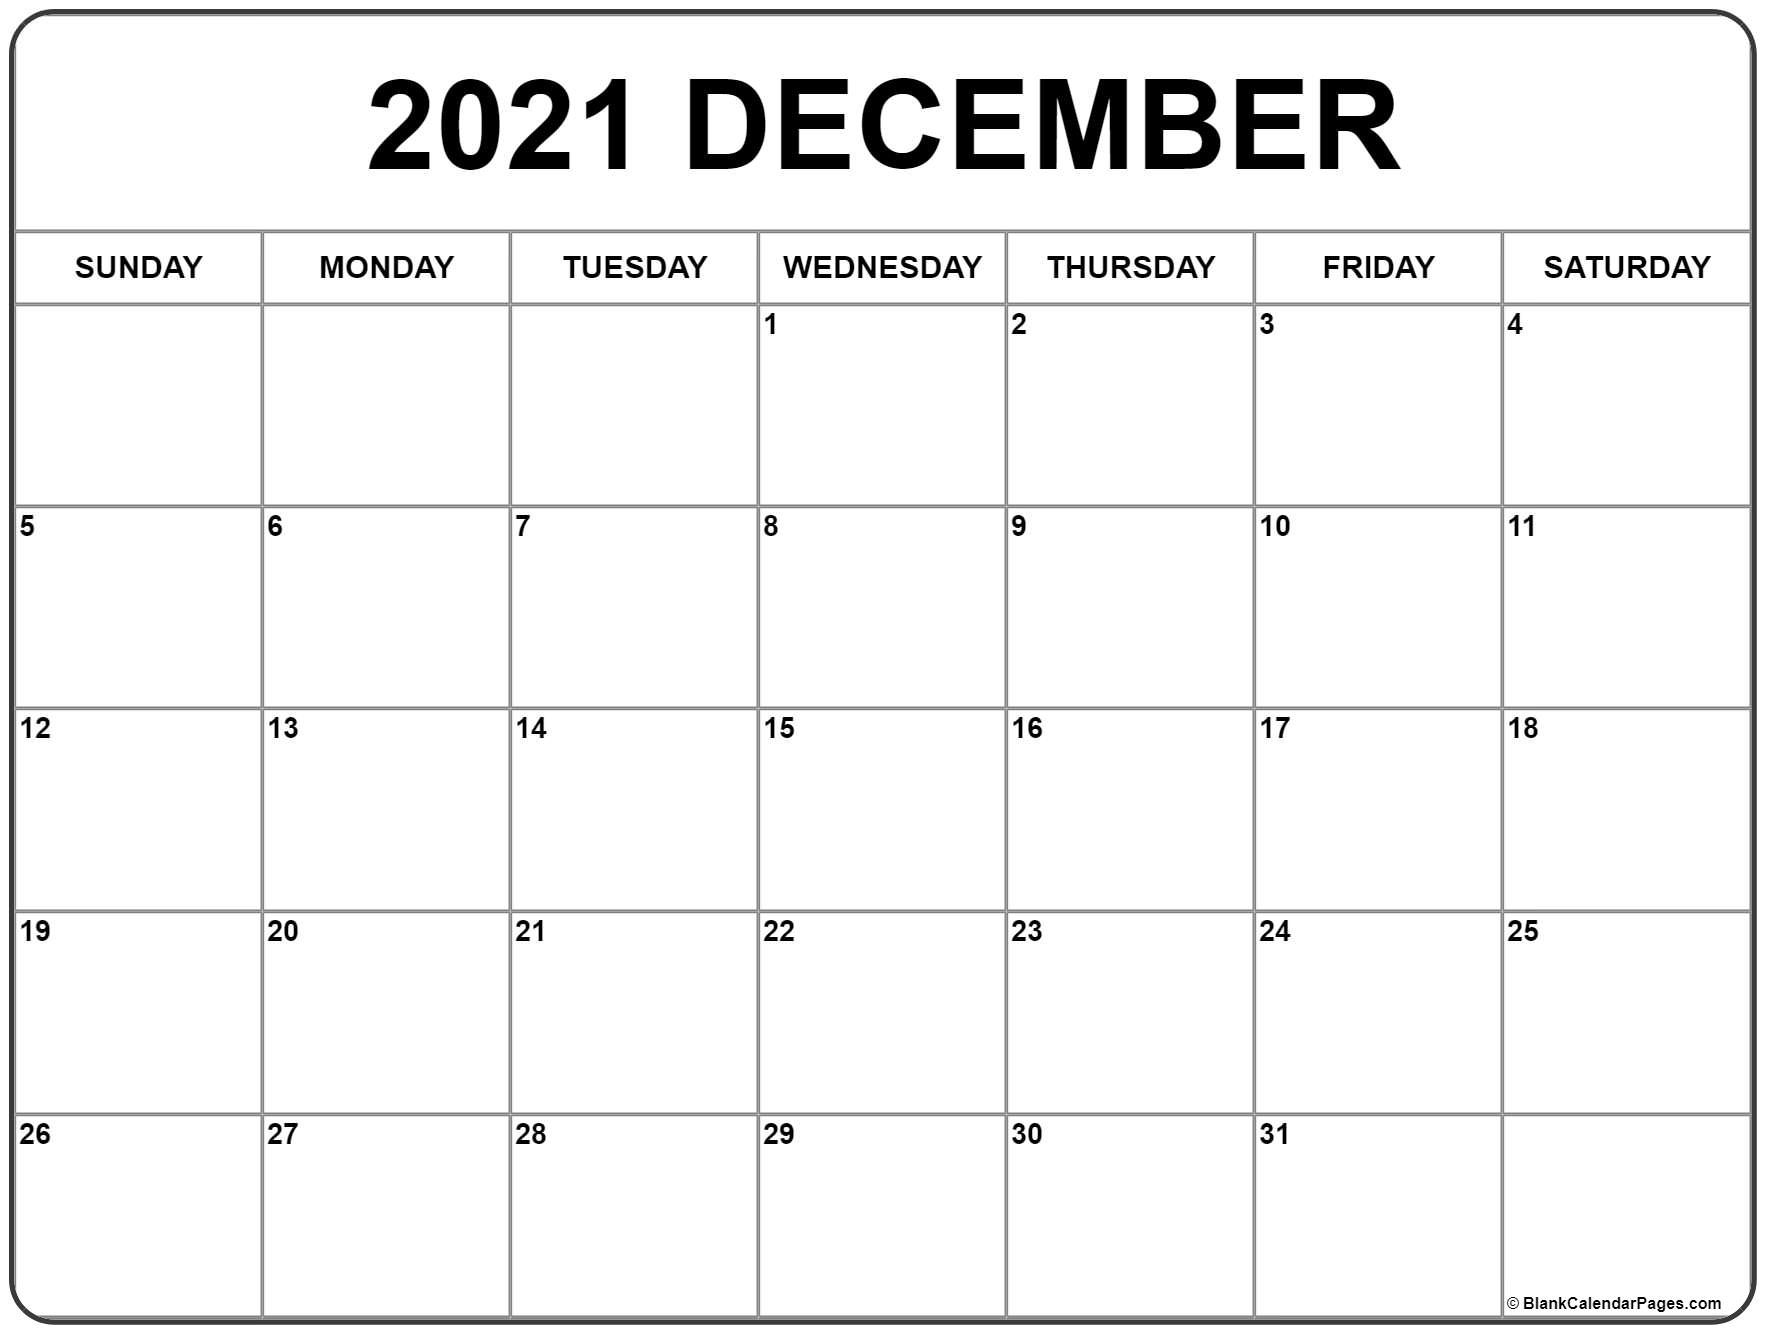 December 2020 Appointment Calendar Template December 2020 calendar | free printable monthly calendars